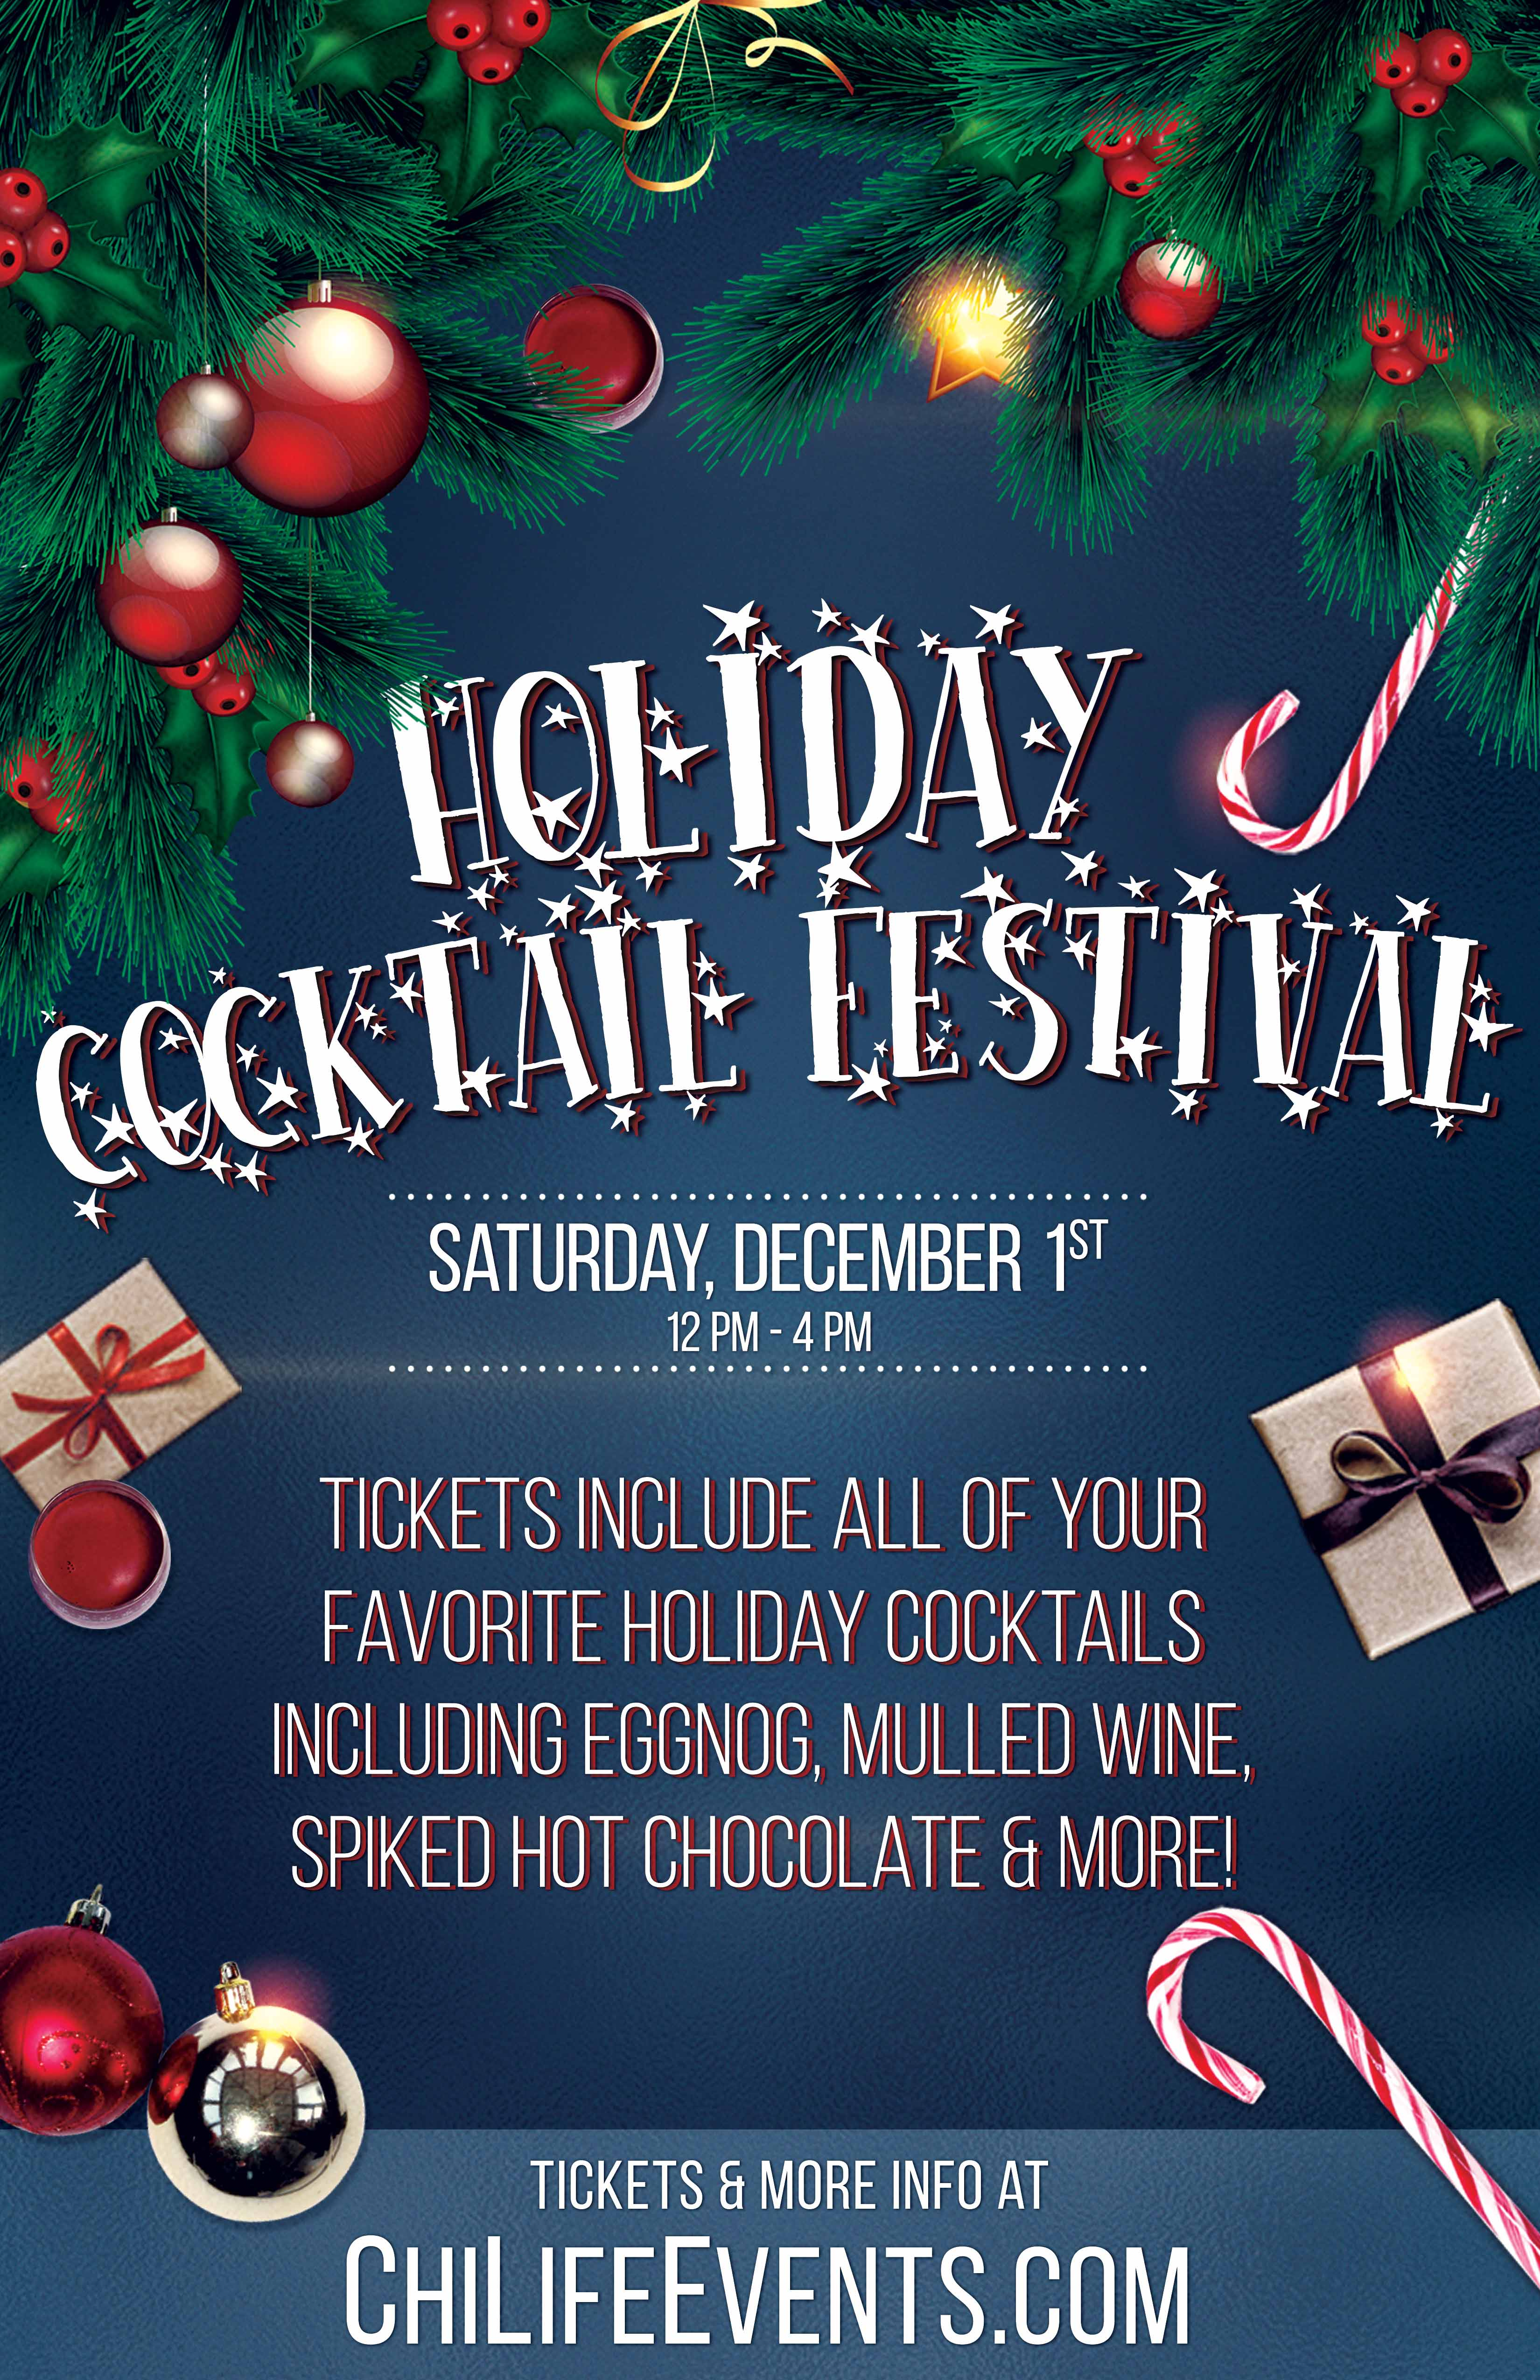 Holiday Cocktail Festival Party - Tickets include all of your favorite holiday cocktails including: Eggnog, Mulled Wine, Spiked Hot Chocolate, Winter Sangria, Holiday Mules, Jingle Juice, Irish Coffee, Winter Mimosas and MORE!